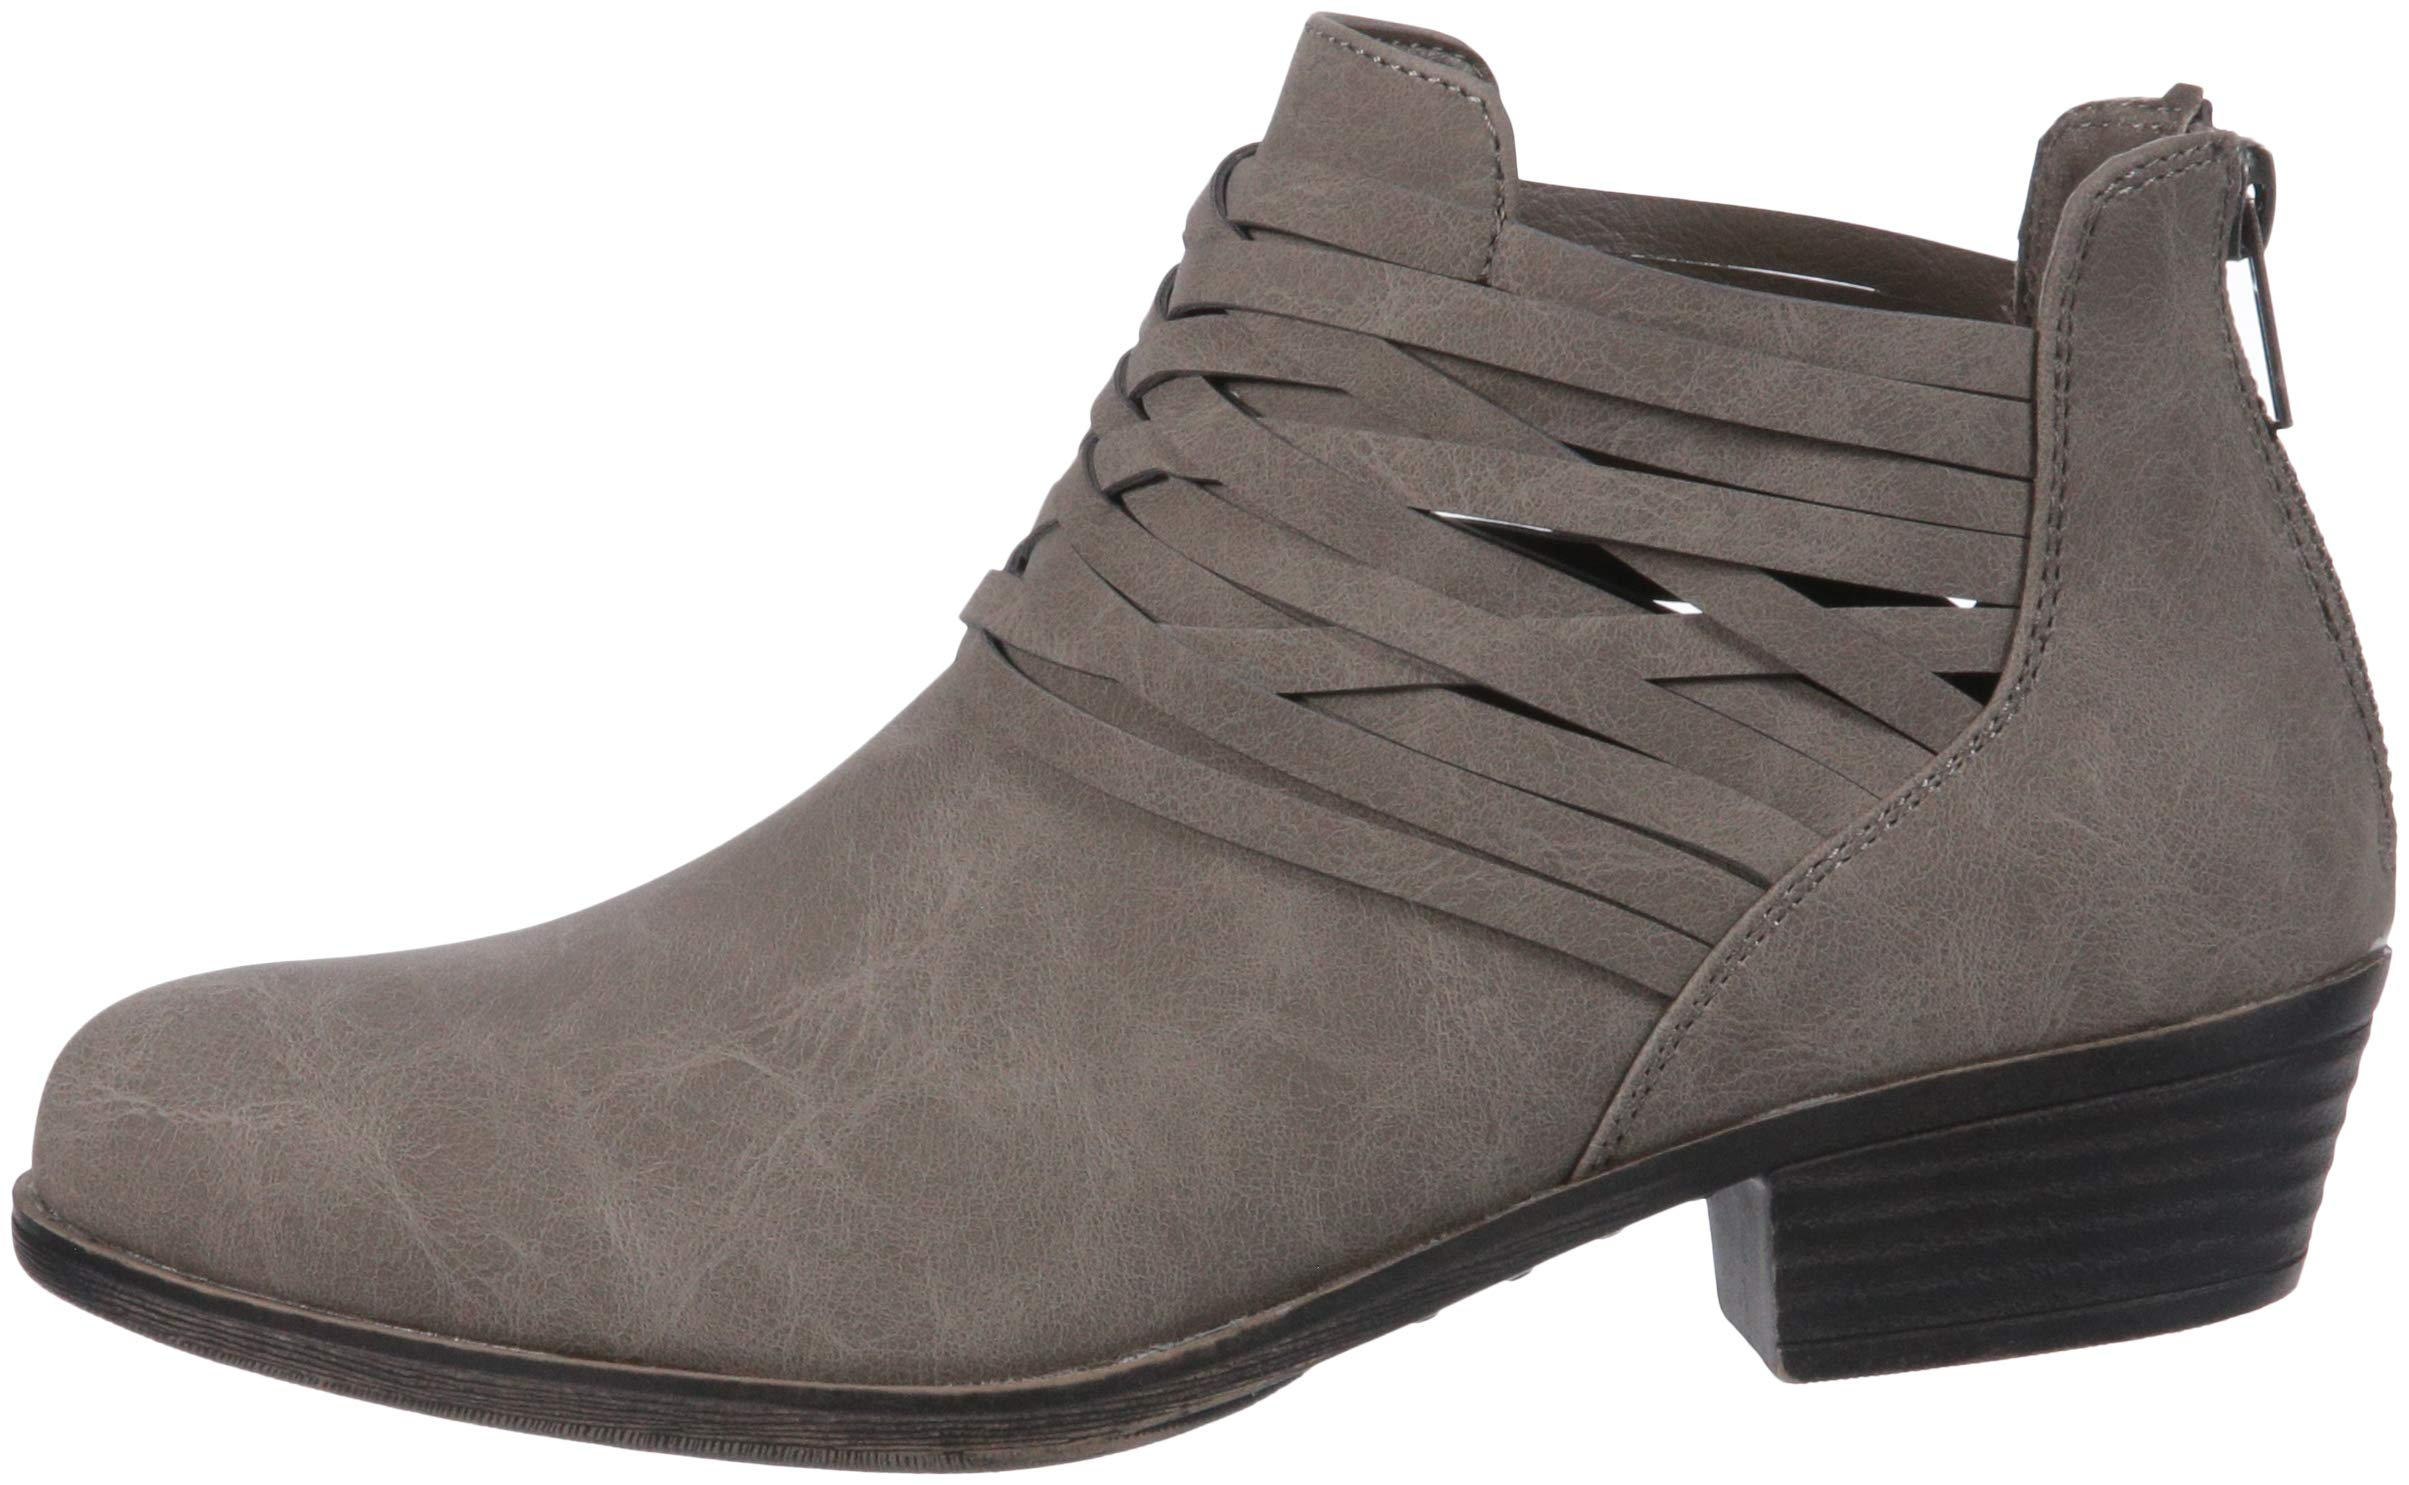 Sugar Women's Rhett Casual Boho Short Bootie with Criss Cross Straps Ankle Boot, Grey Distressed, 9 Medium US by Sugar (Image #5)